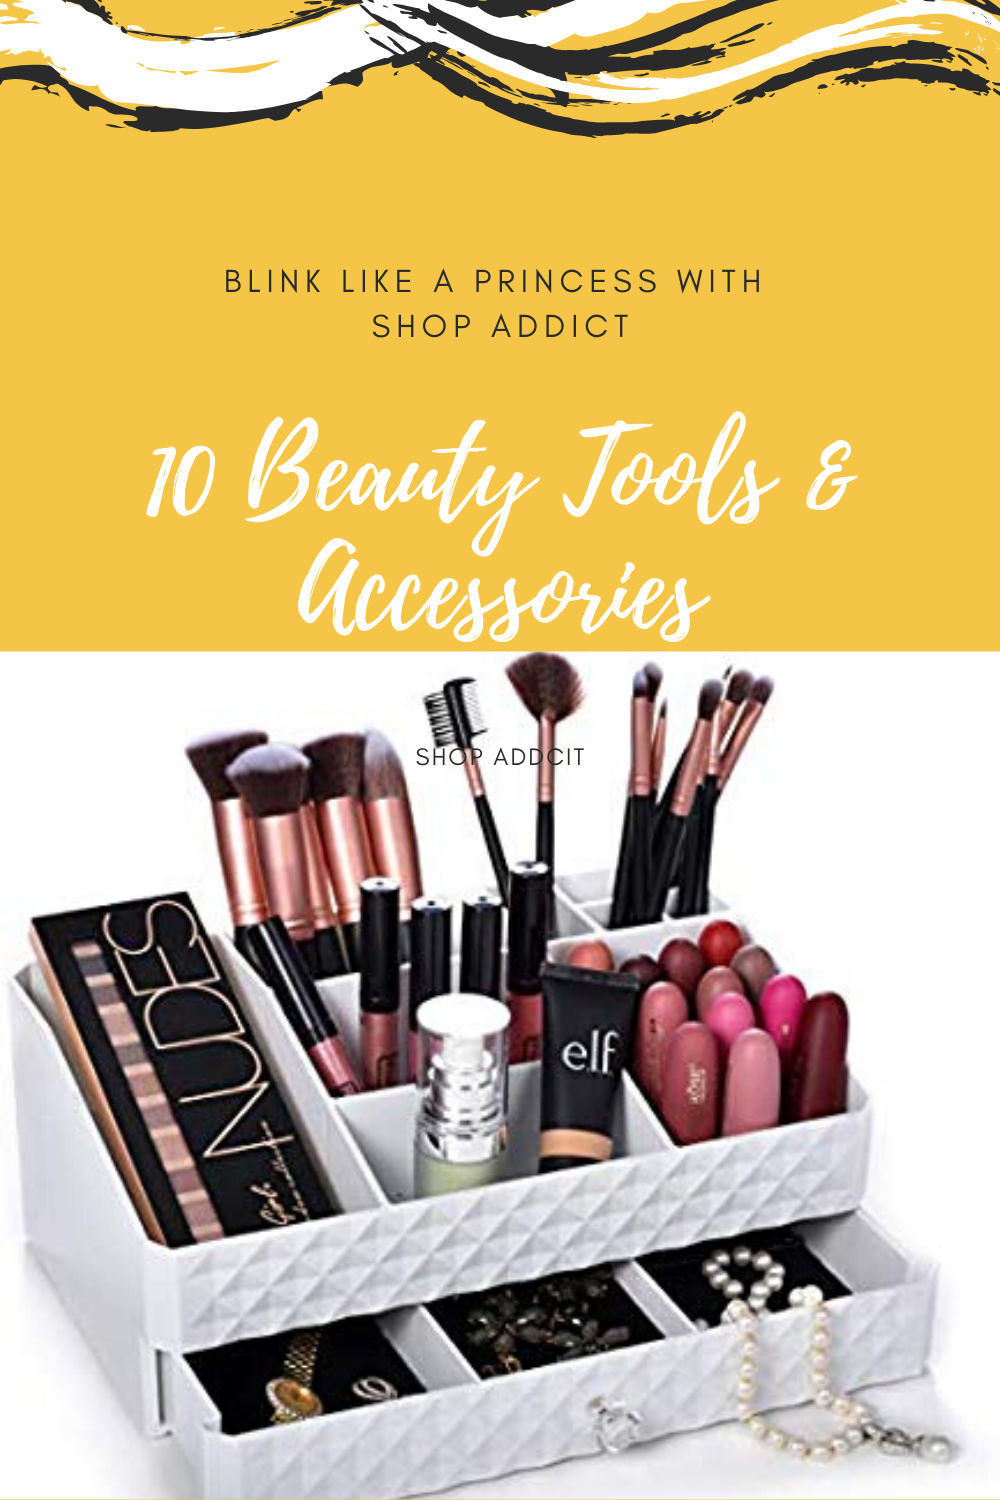 Top 10 Beauty Tools Accessories In 2020 Beauty Tool Beauty Tools Accessories